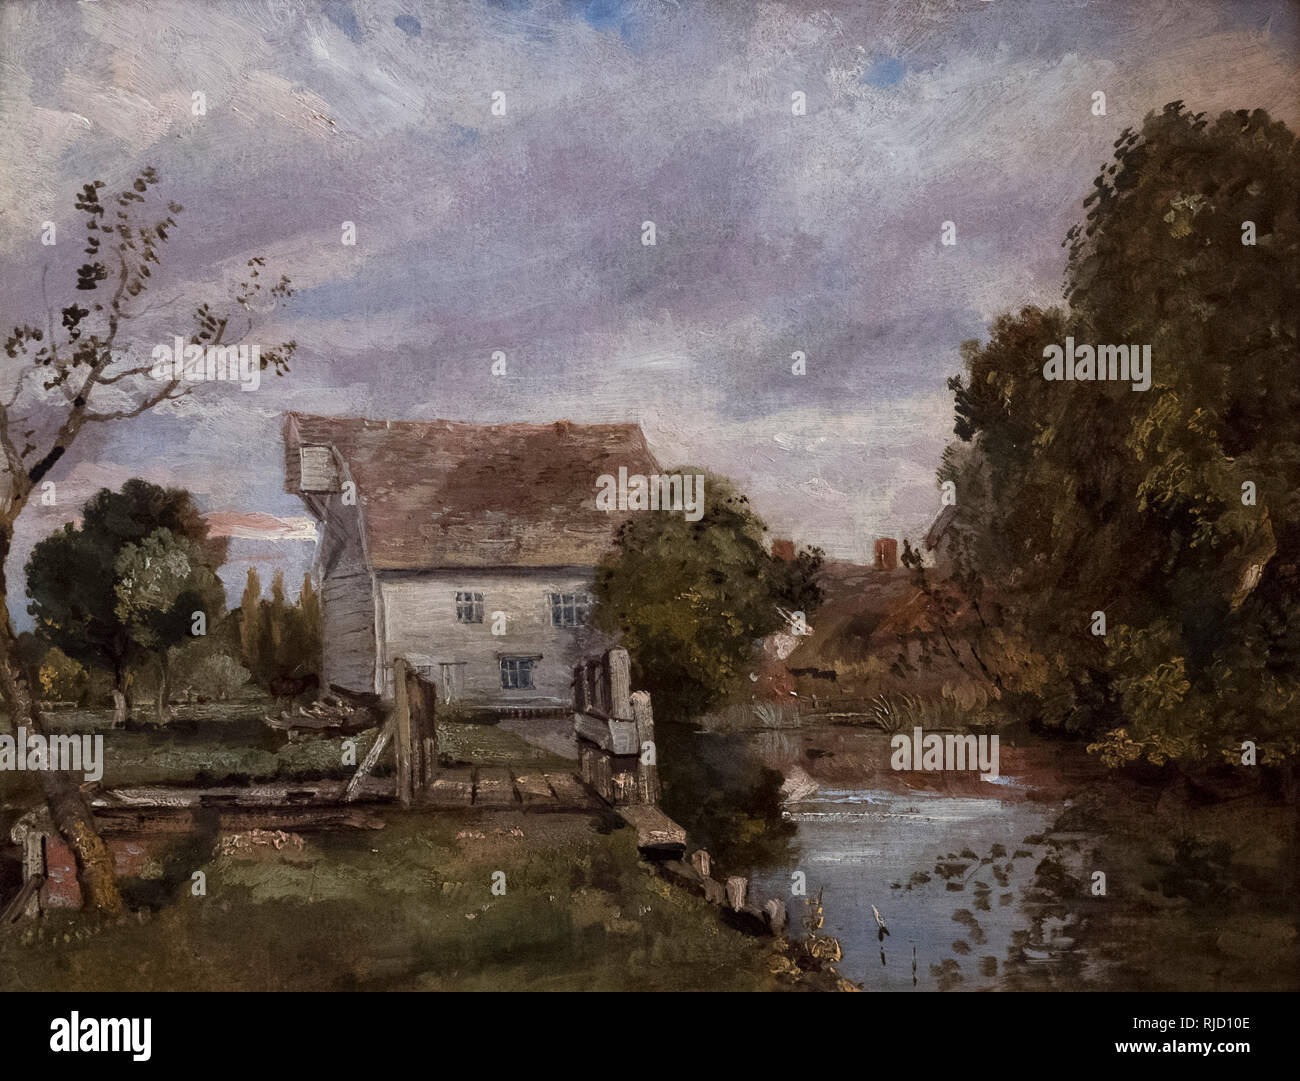 John Constable (1776-1837), attribution doubtful, Mill on the River Stour, ca. 1820.  Mühle am Flusse Stour. Alte Nationalgalerie, Berlin. - Stock Image